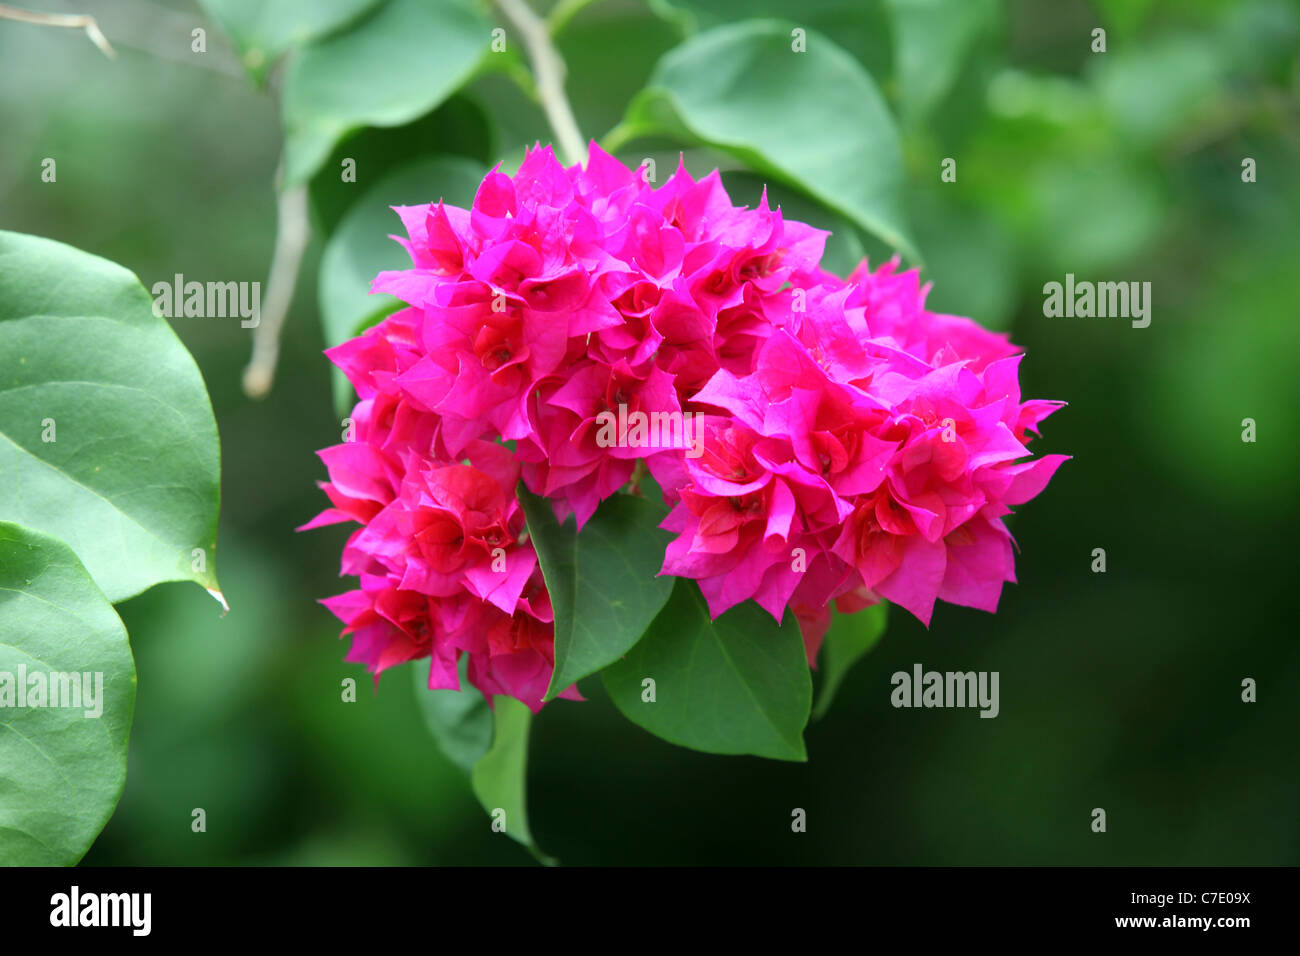 Magenta bracts on brightly coloured Bougainvillea glabra Crete, Bougainville Island, Papua New Guinea - Stock Image